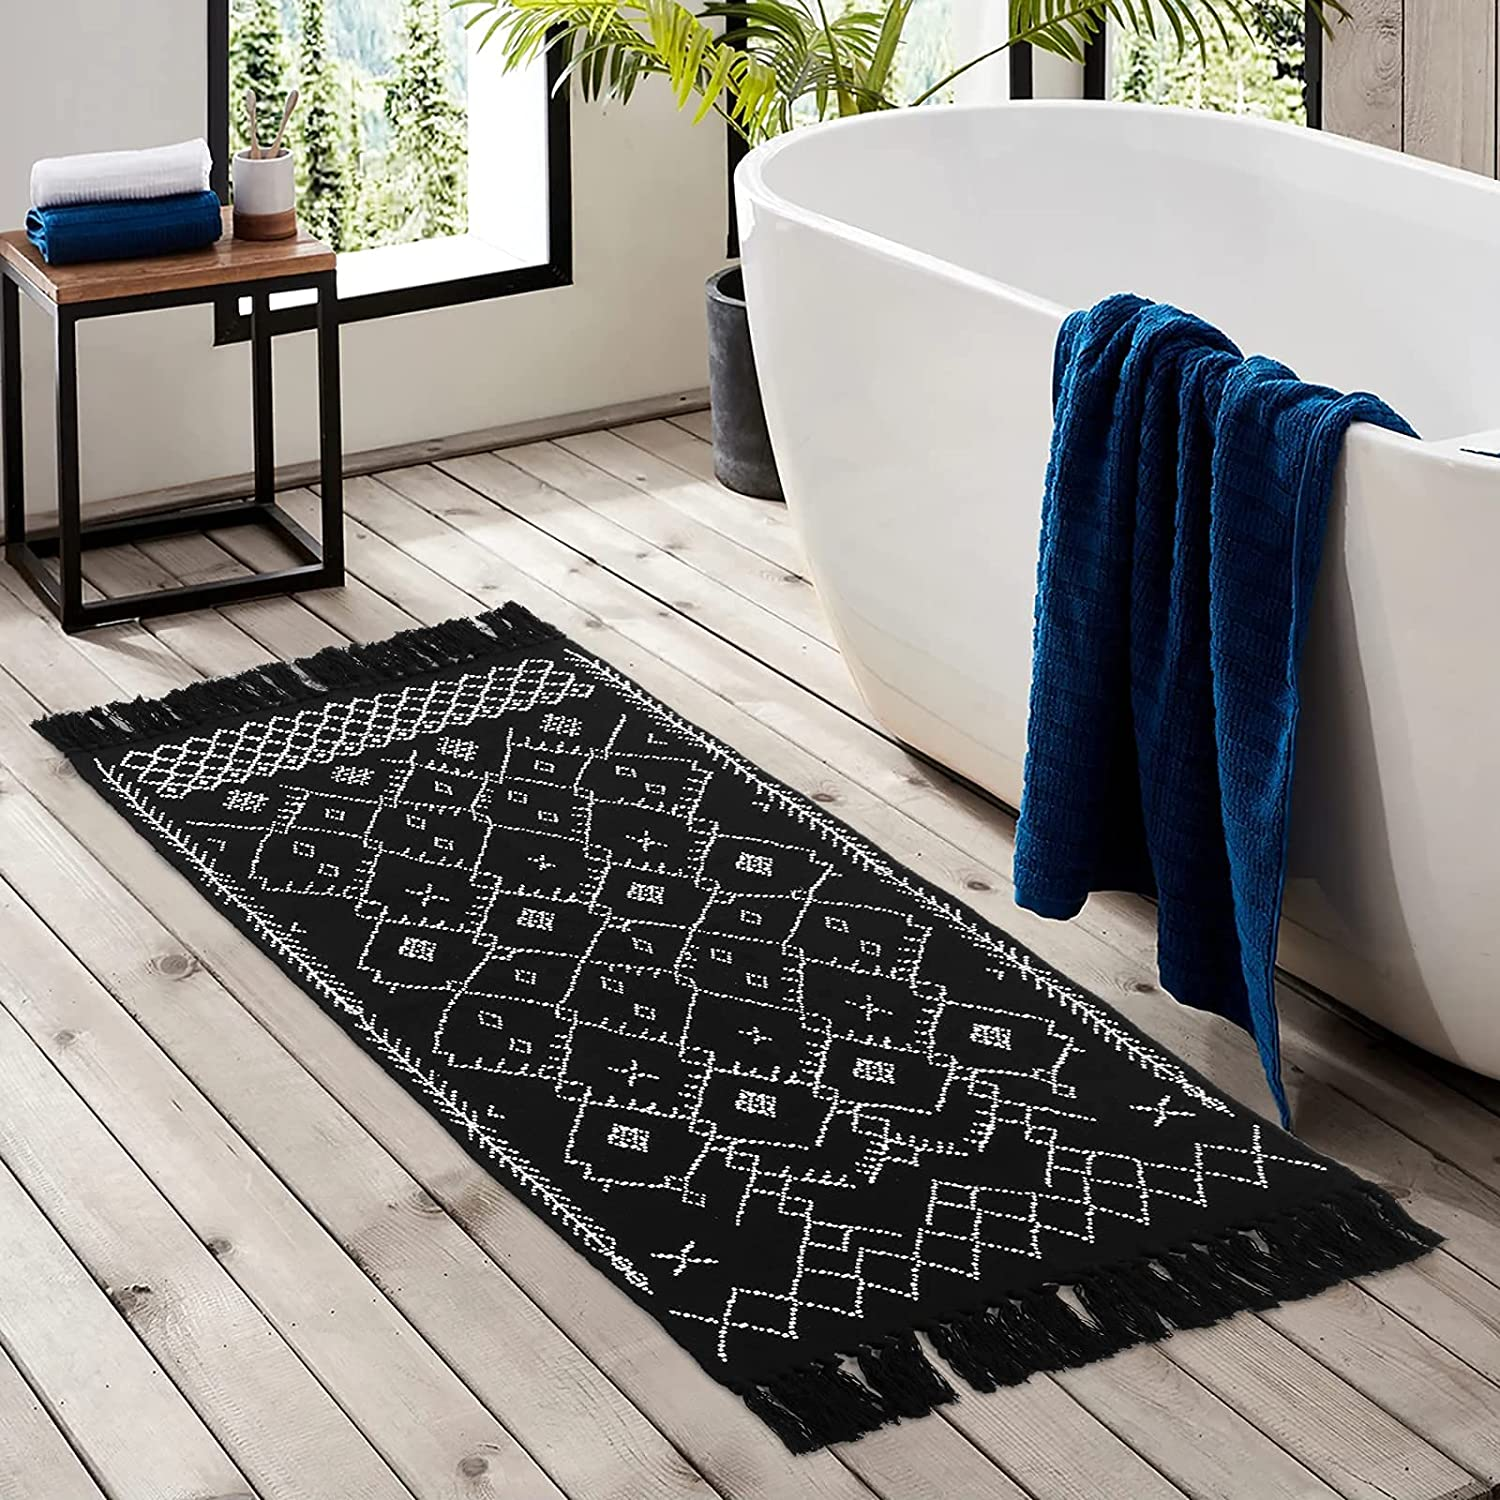 Lahome Boho Bathroom Rug with Tassels, 20x20.20ft Black White Small Area Rug  Woven Geometric Tribal Cotton Washable Laundry Door Mat for Entryway  Kitchen ...